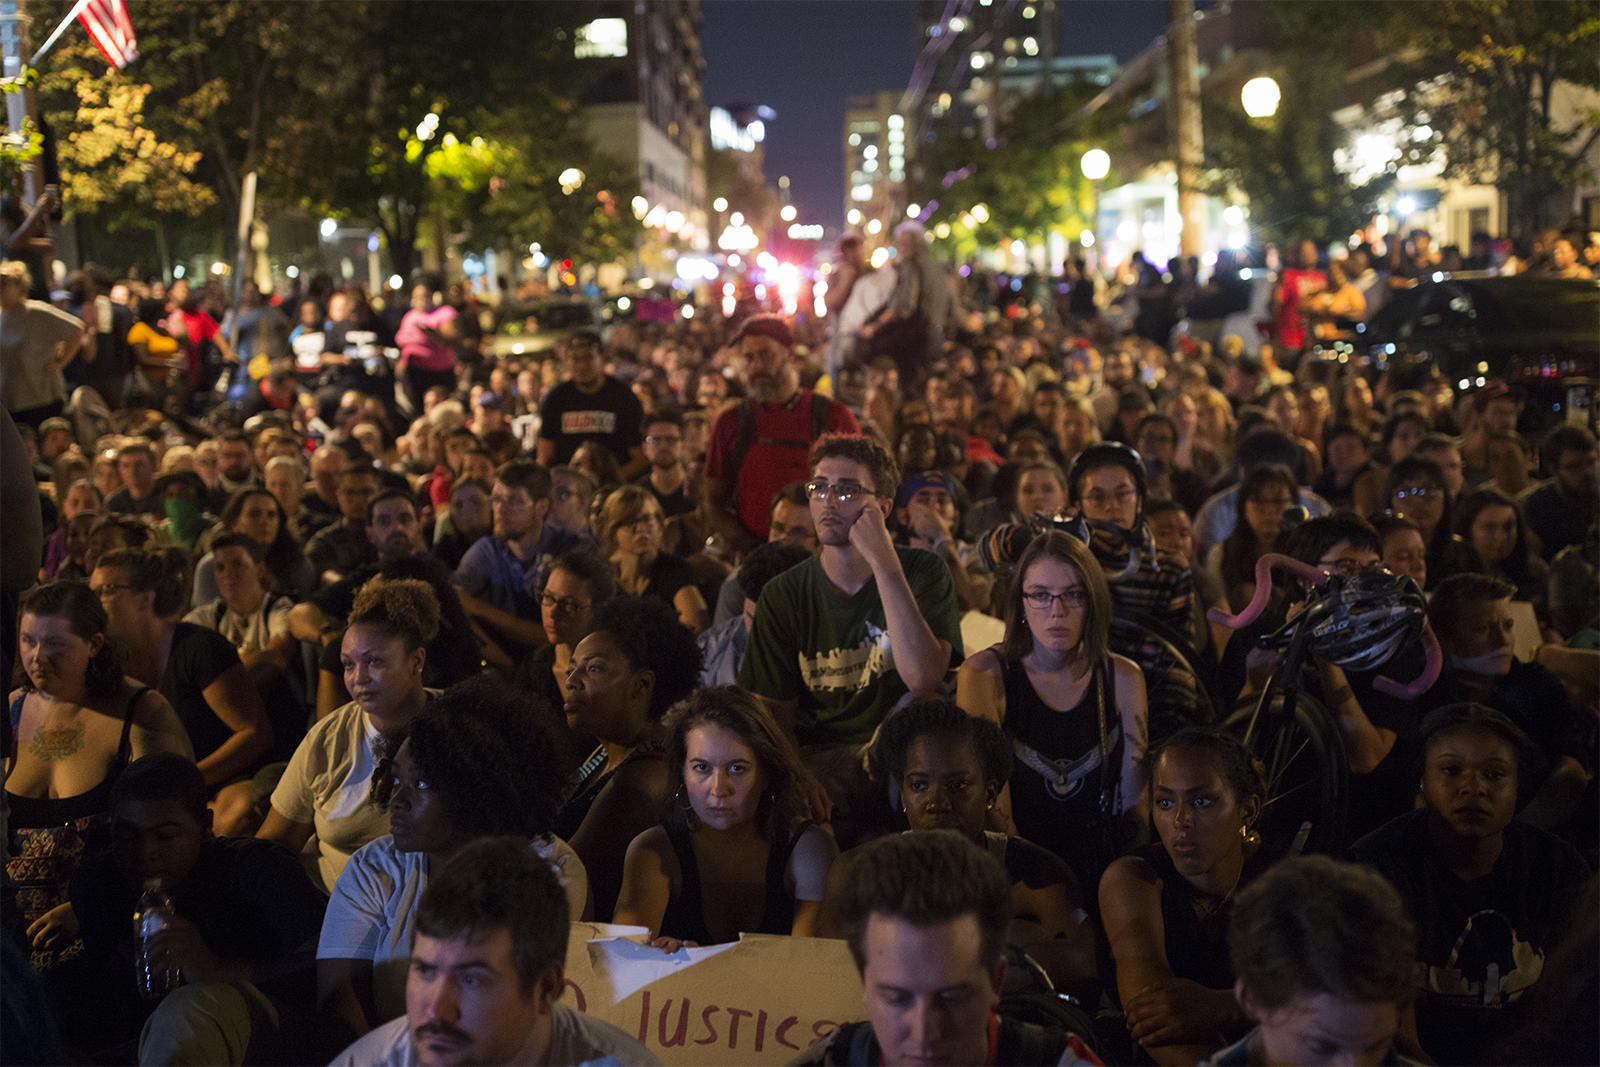 Protesters sit at the intersection of Maryland and Euclid for a moment of silence on Friday, Sept. 15. CAROLINA HIDALGO | ST. LOUIS PUBLIC RADIO